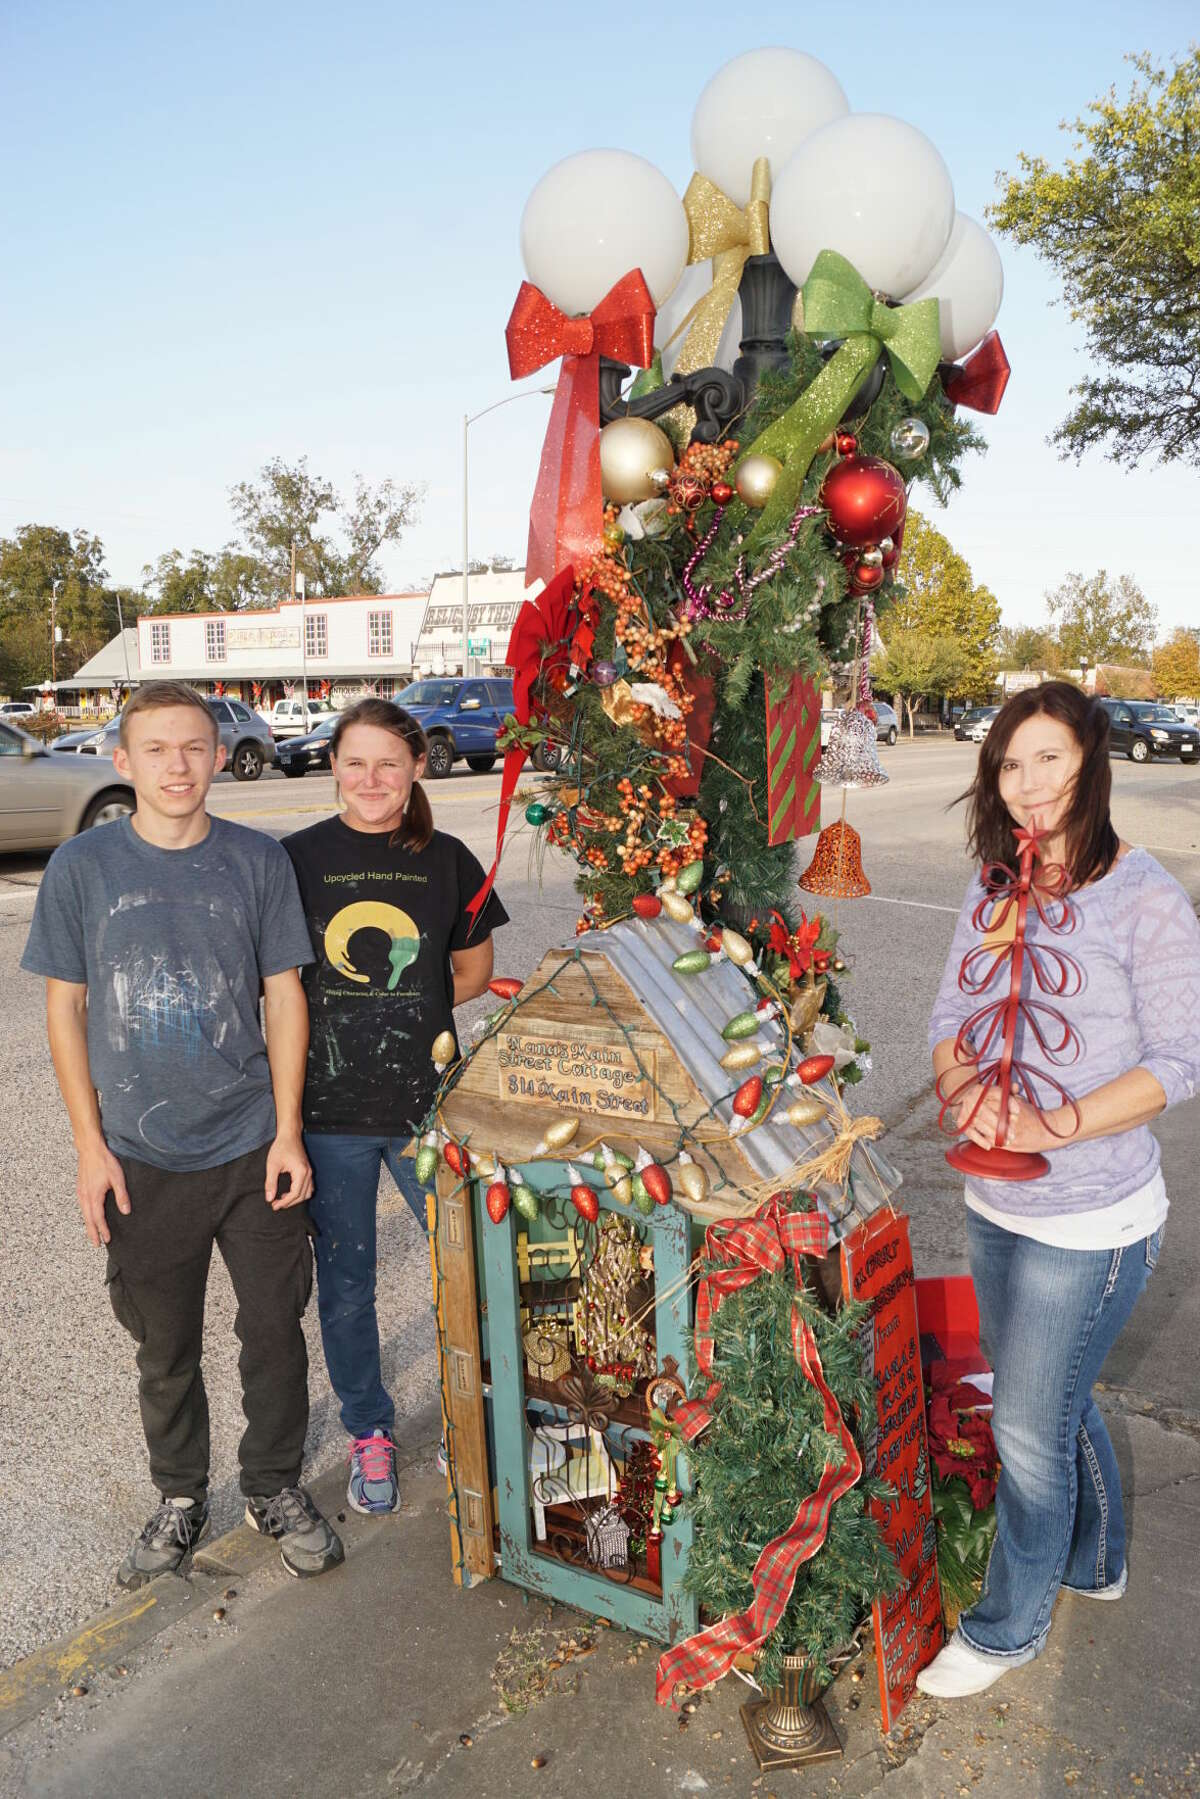 The team from Nana's Main Street Cottage took the best overall award for their creation in Tomball's annual Downtown Holiday Lamp Post Stroll. Shown are, from left, Darryl Romero, Tiffany Romero, and Ann Howes.